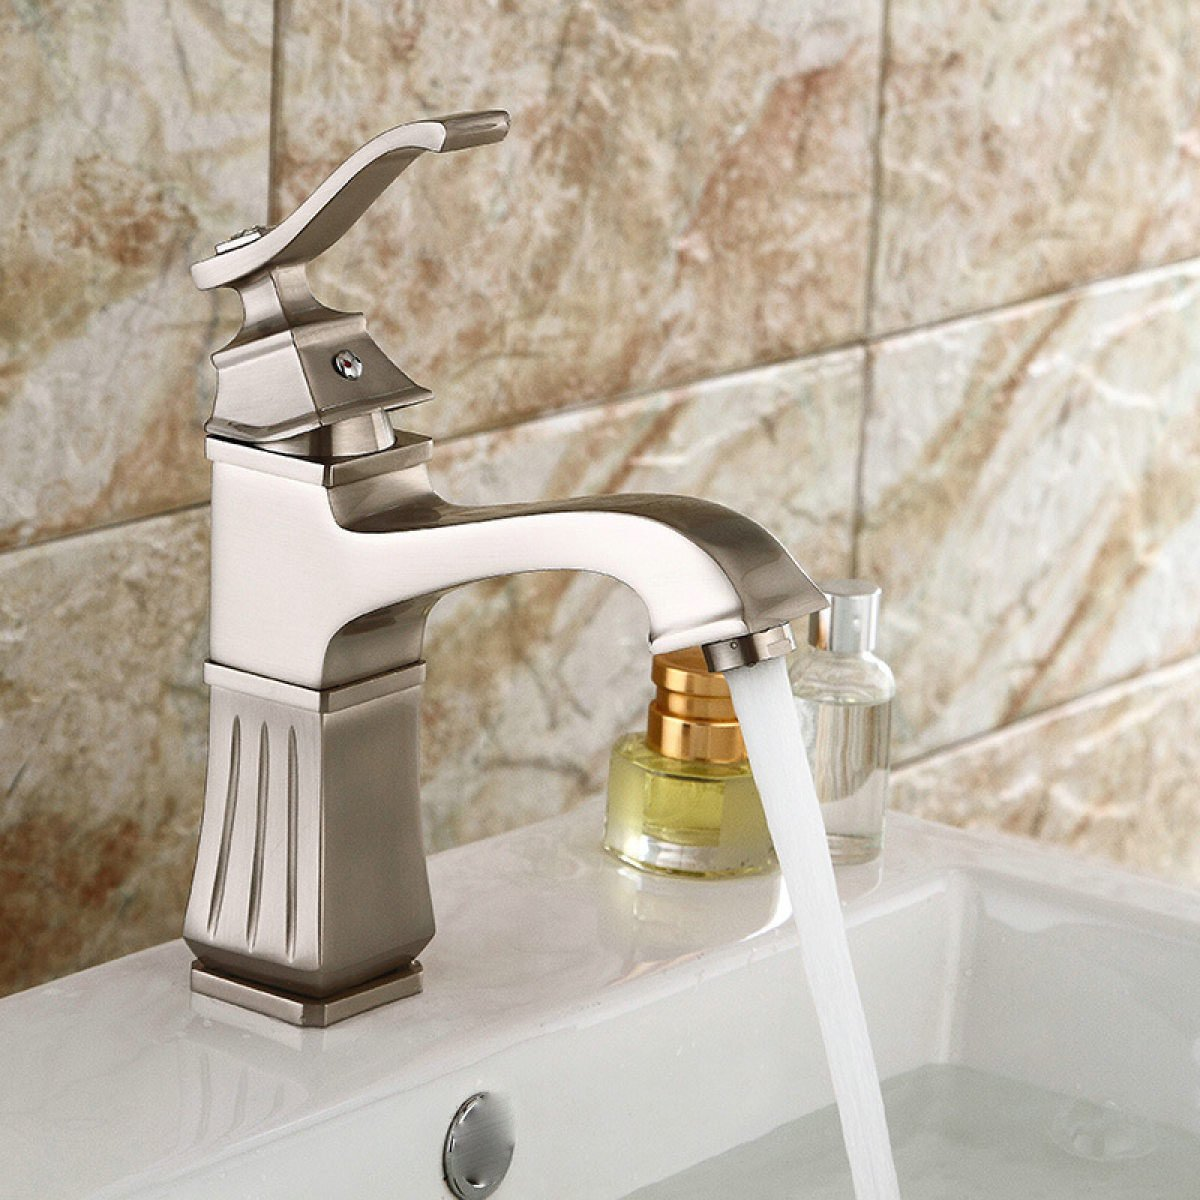 LDONGSH Drawing Home Hotel Under The Basin European Sink Basin Faucet Tap